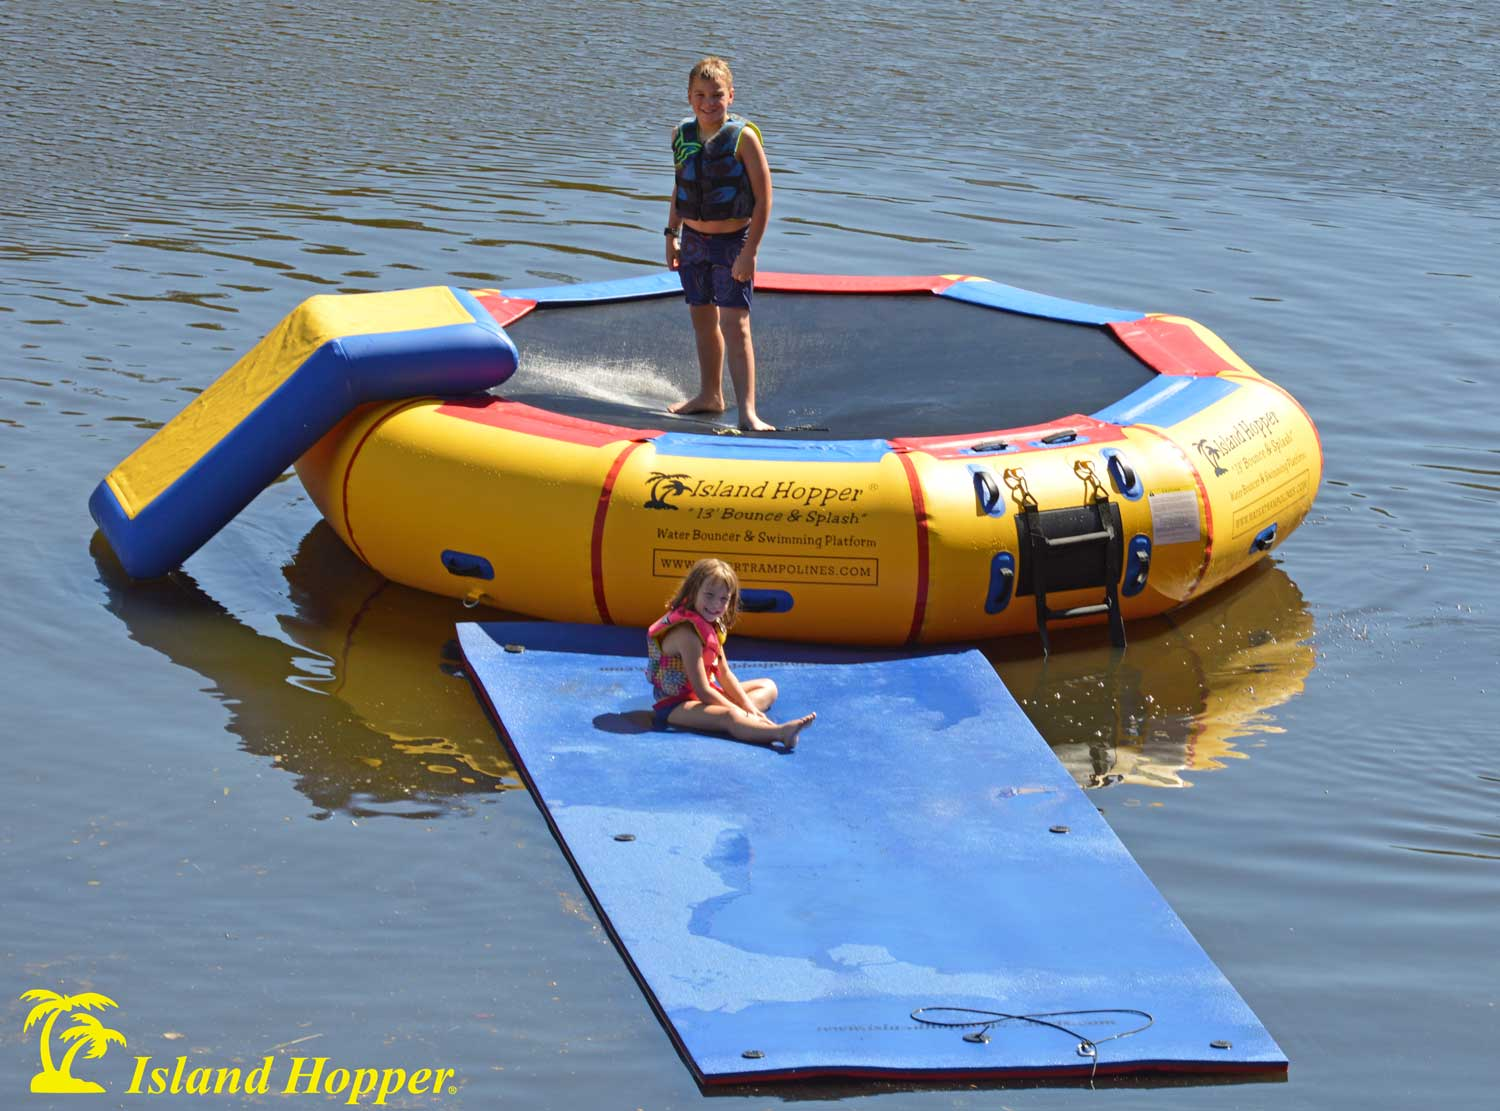 13 Bounce N Splash Water Park Island Hopper